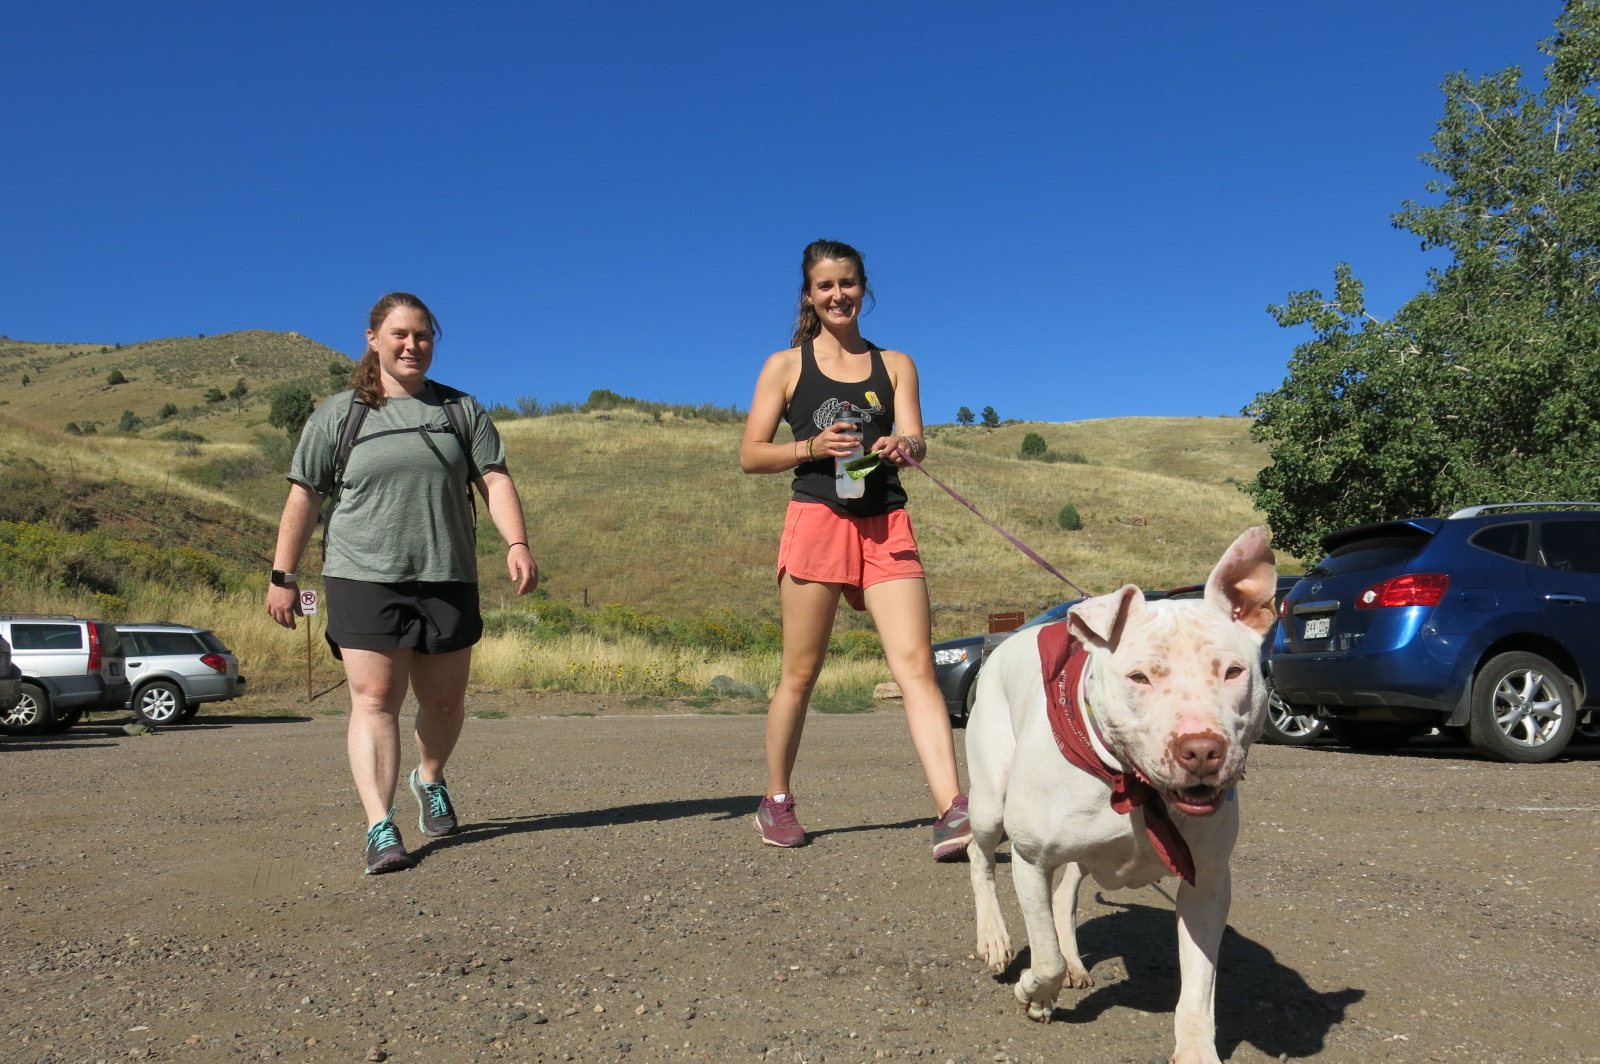 Sarah Steinke and Keely Kleman hit the trails at Jefferson County's Mount Galbraith parking lot. Finding parking is becoming an increasing challenge for the 7 million visitors who go to Jefferson County's open space system every year.